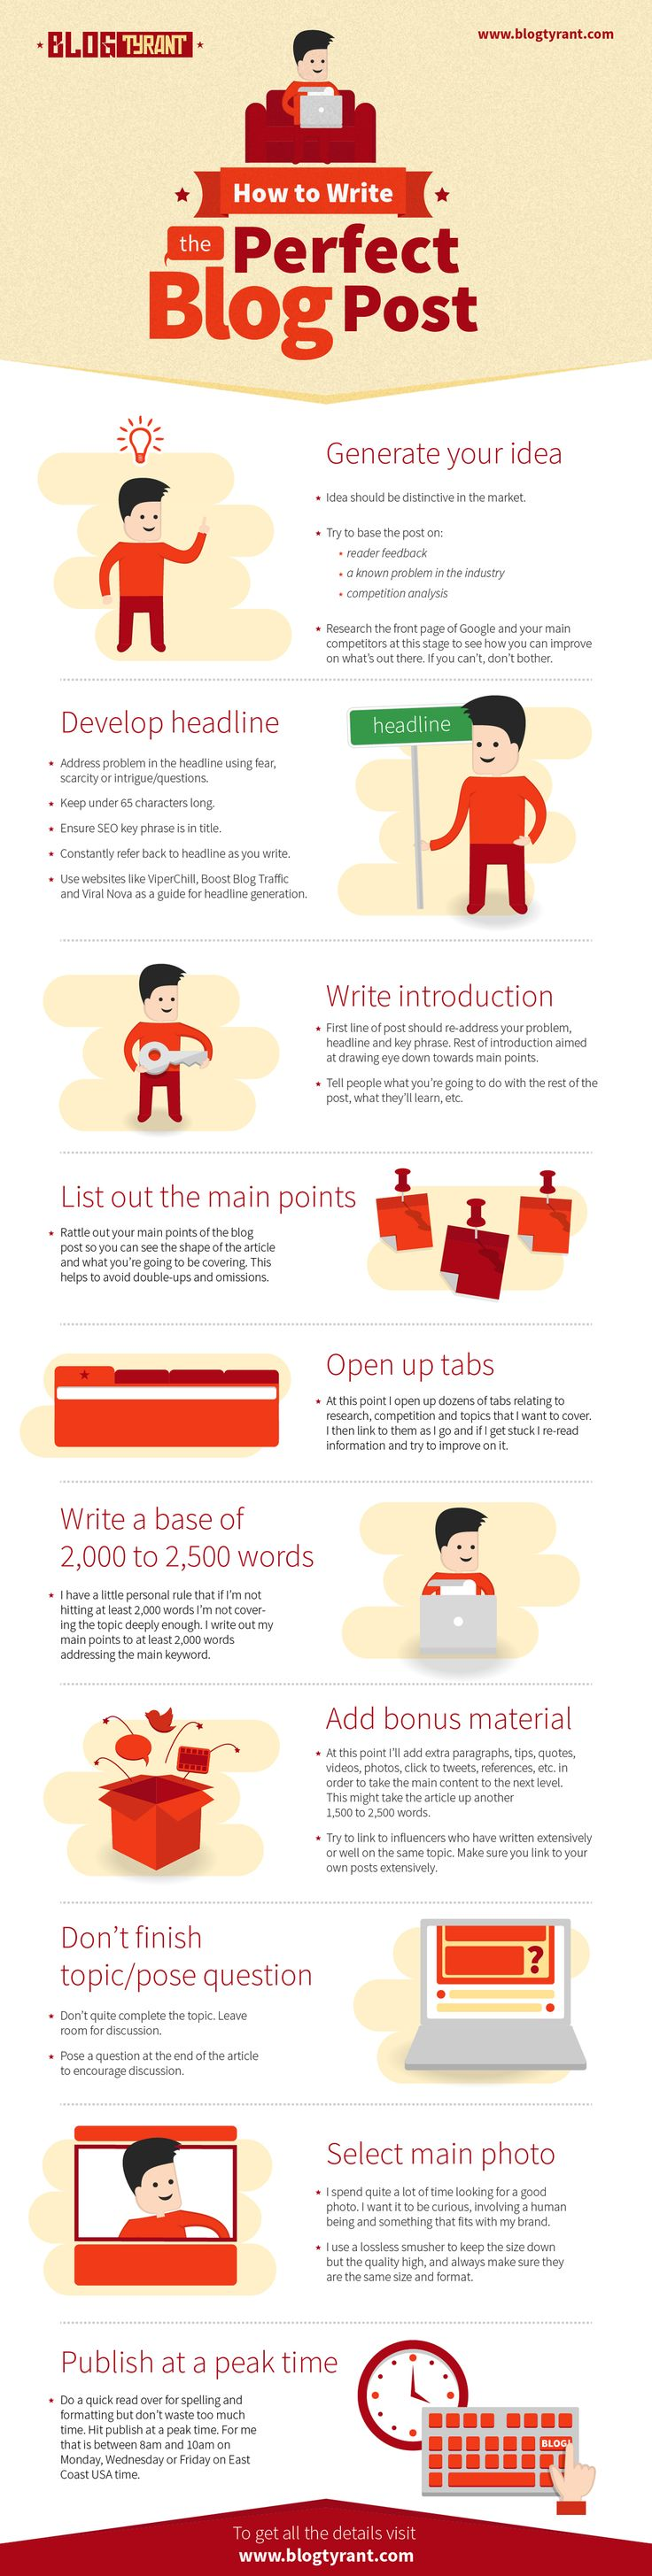 The Perfect Blog Post. Great tips from the BlogTyrant - I love his stuff. Good infographic on how to systematically write your blog article.